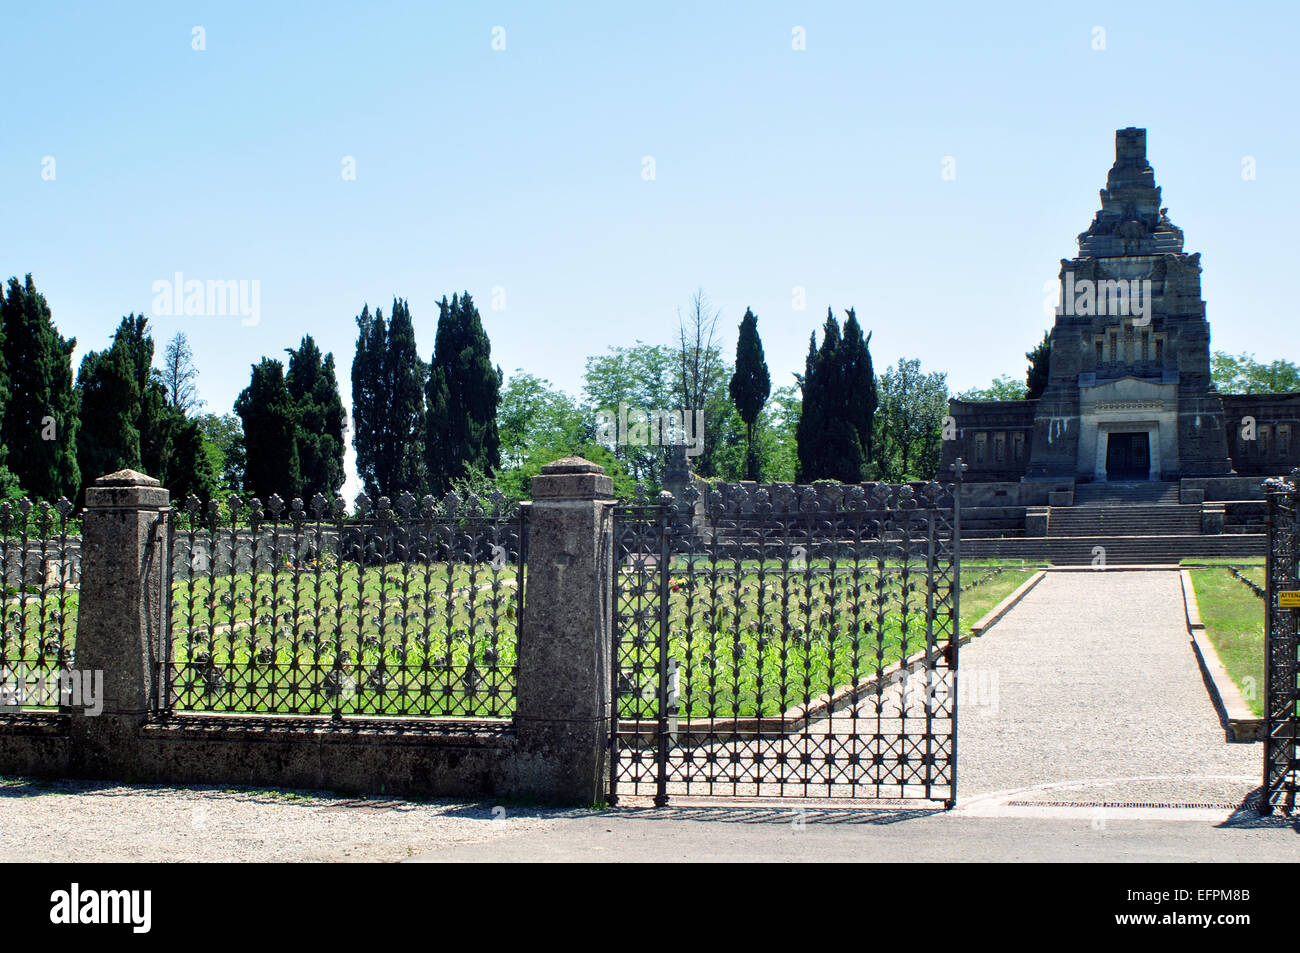 Italy, Lombardy, Crespi d' Adda, World Heritage Site, Worker Village, Cemetery - Stock Image